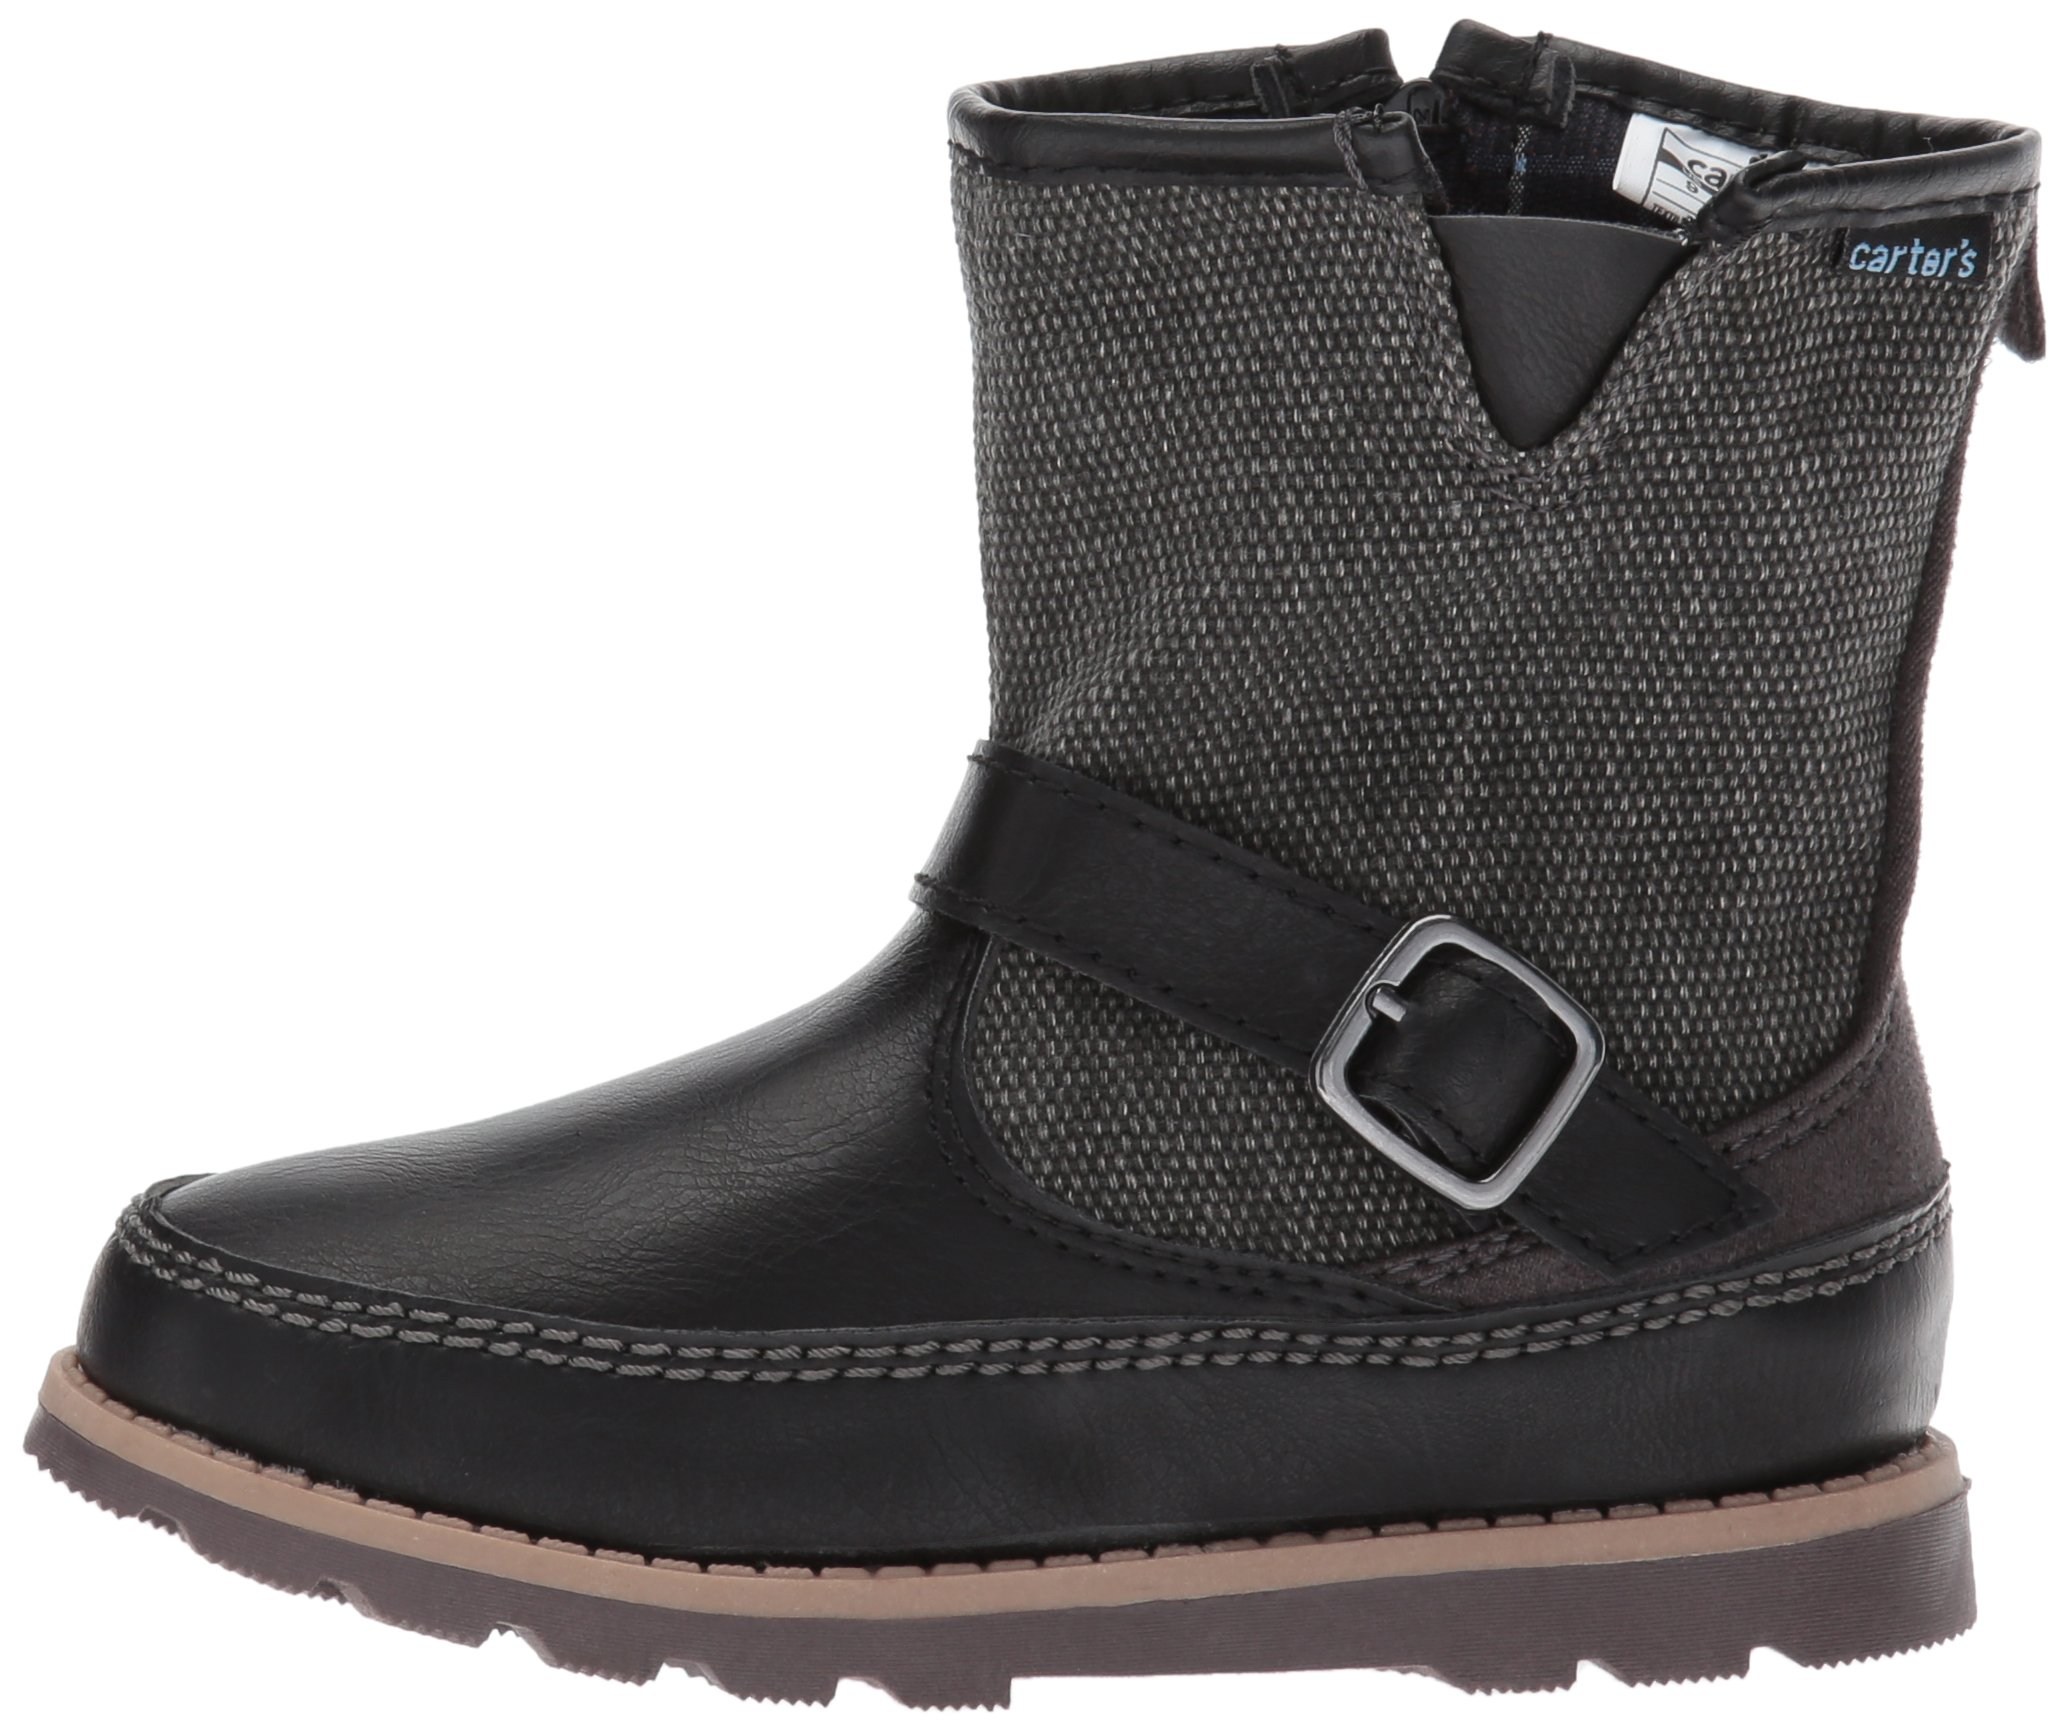 Carter's Boys' Galaway Fashion Boot, Black/Grey, 11 M US Little Kid by Carter's (Image #5)